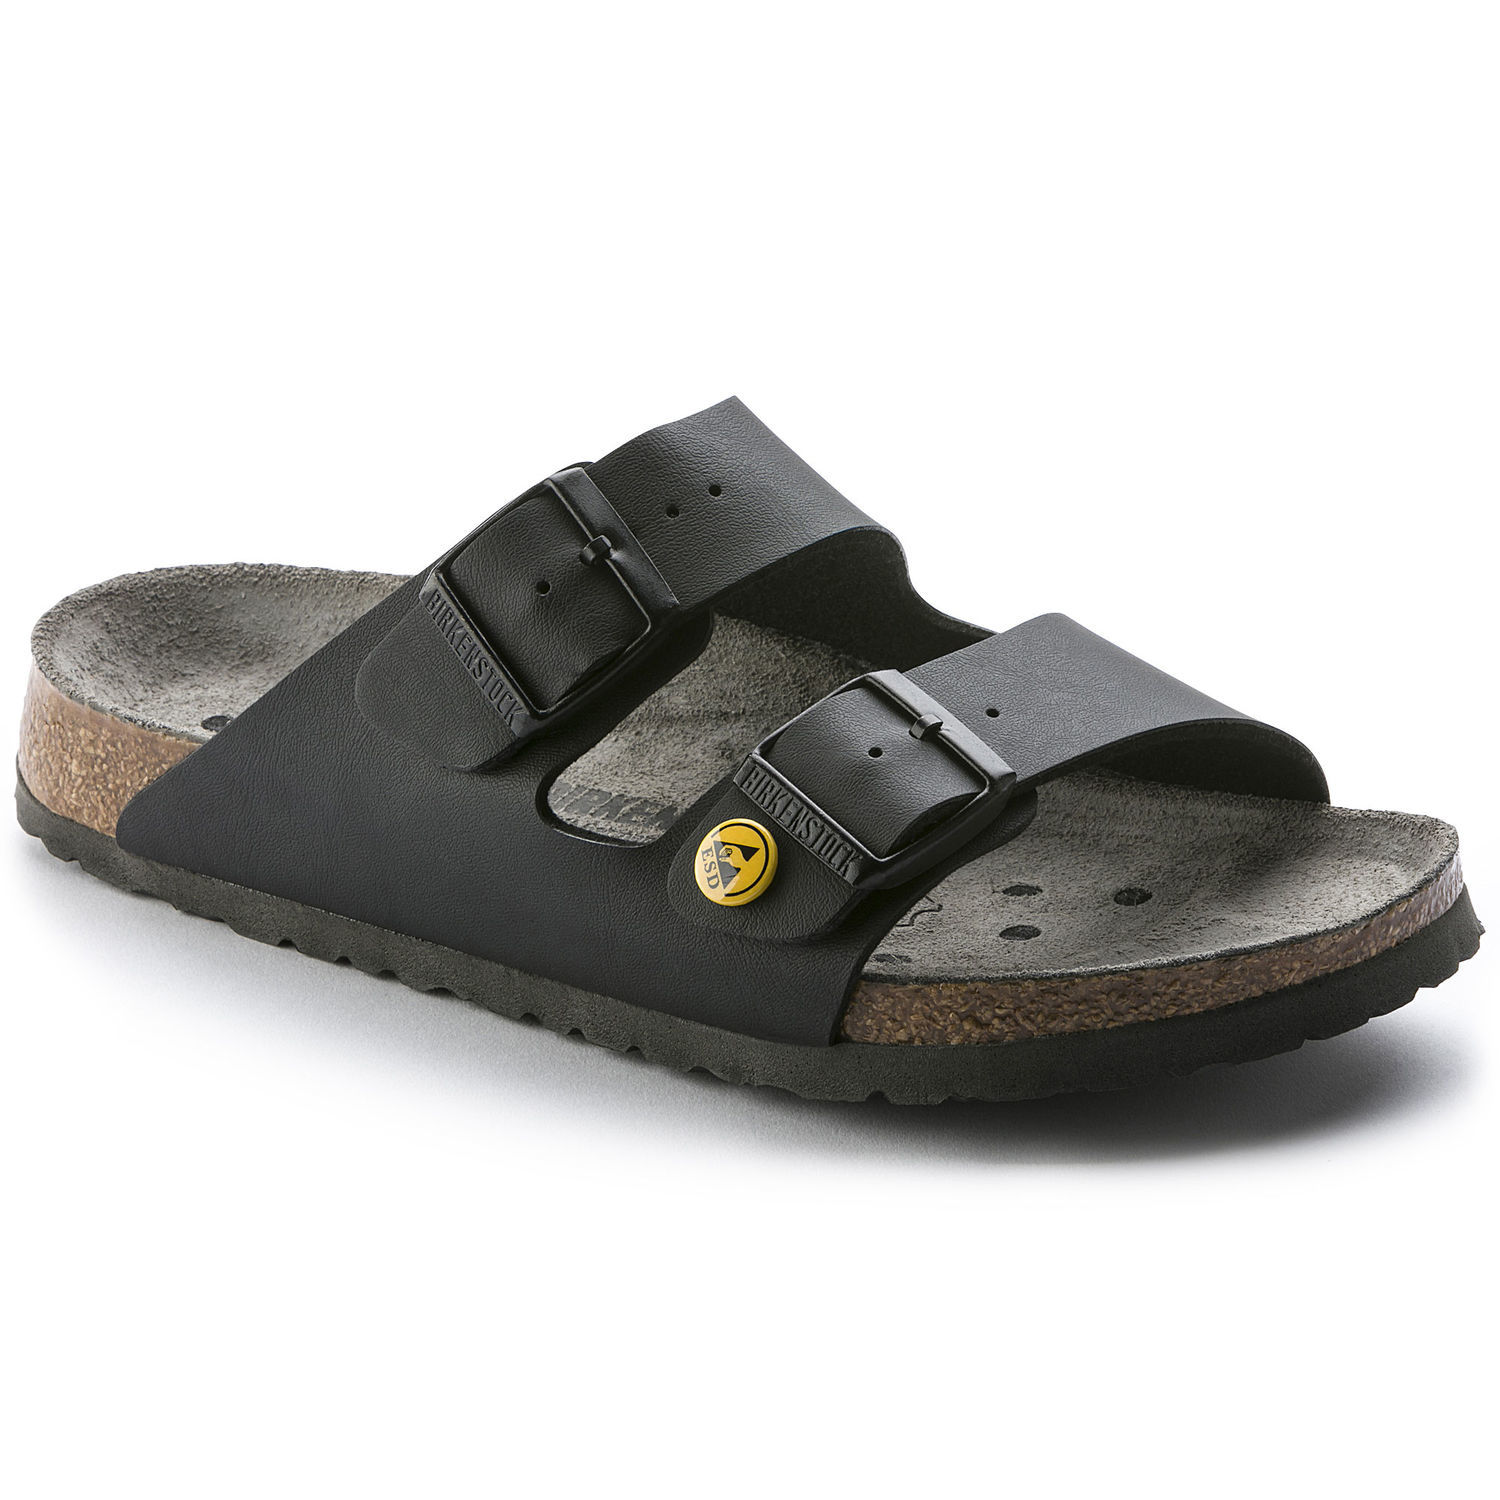 Image of   Sort Arizona ESD sandal fra Birkenstock - 40